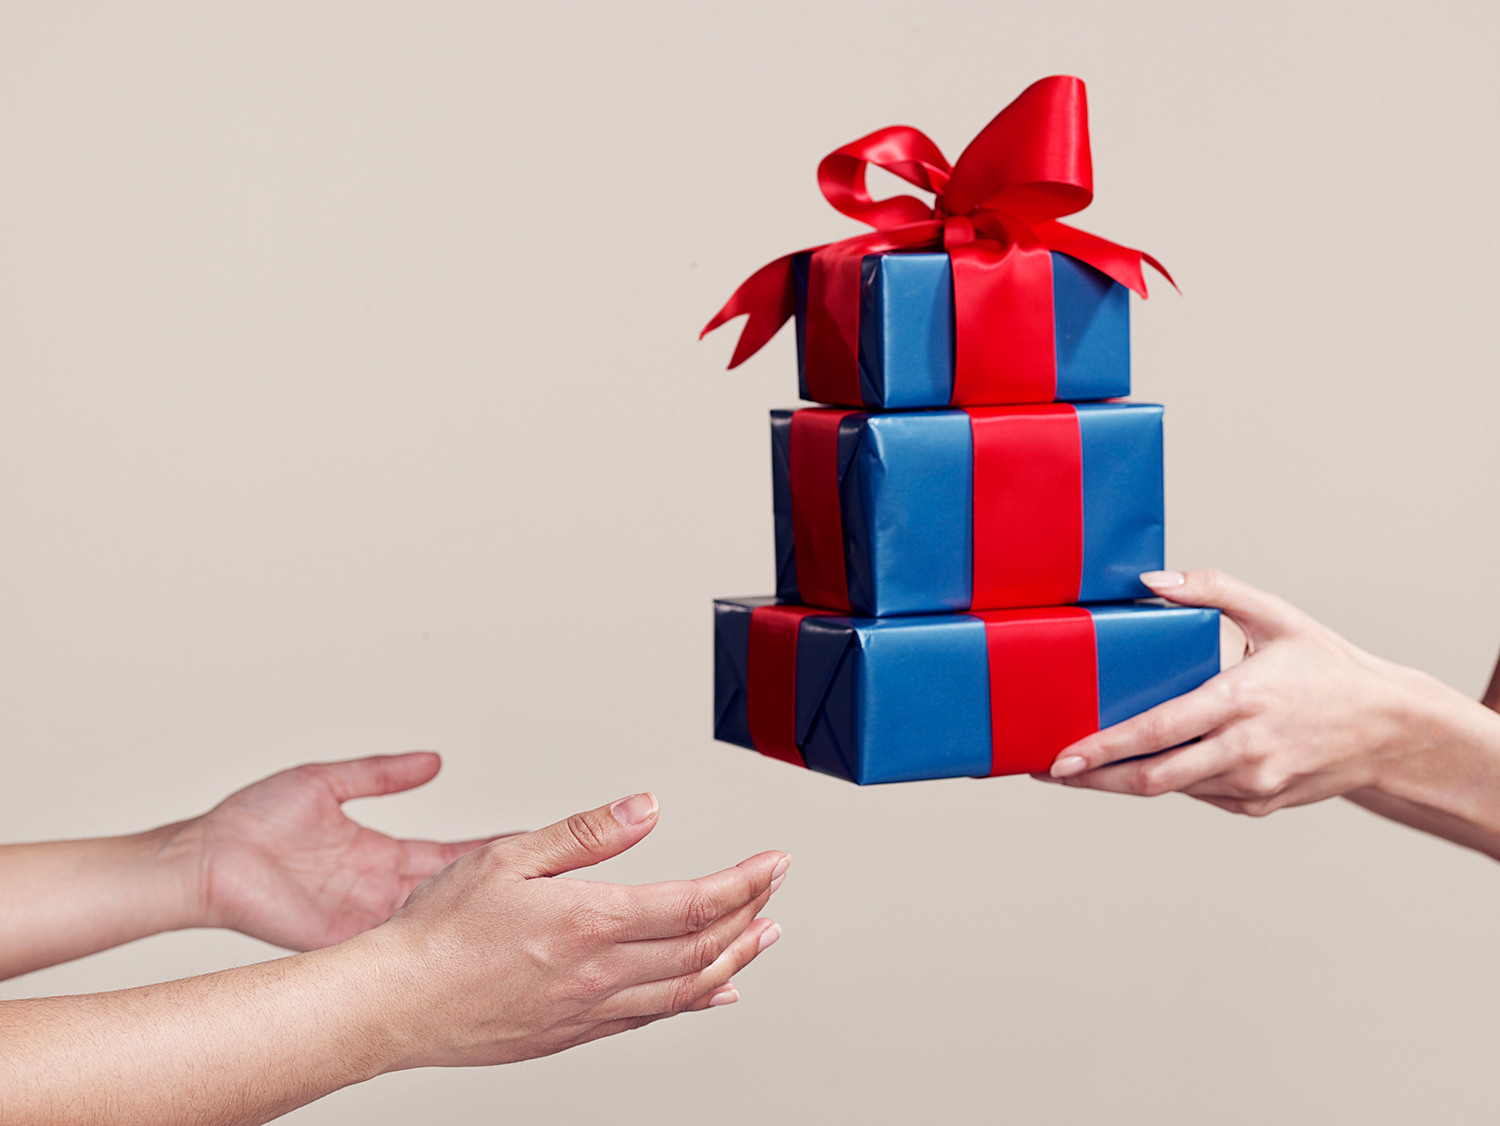 The Right Way to Deal With Gifts You Don't Want